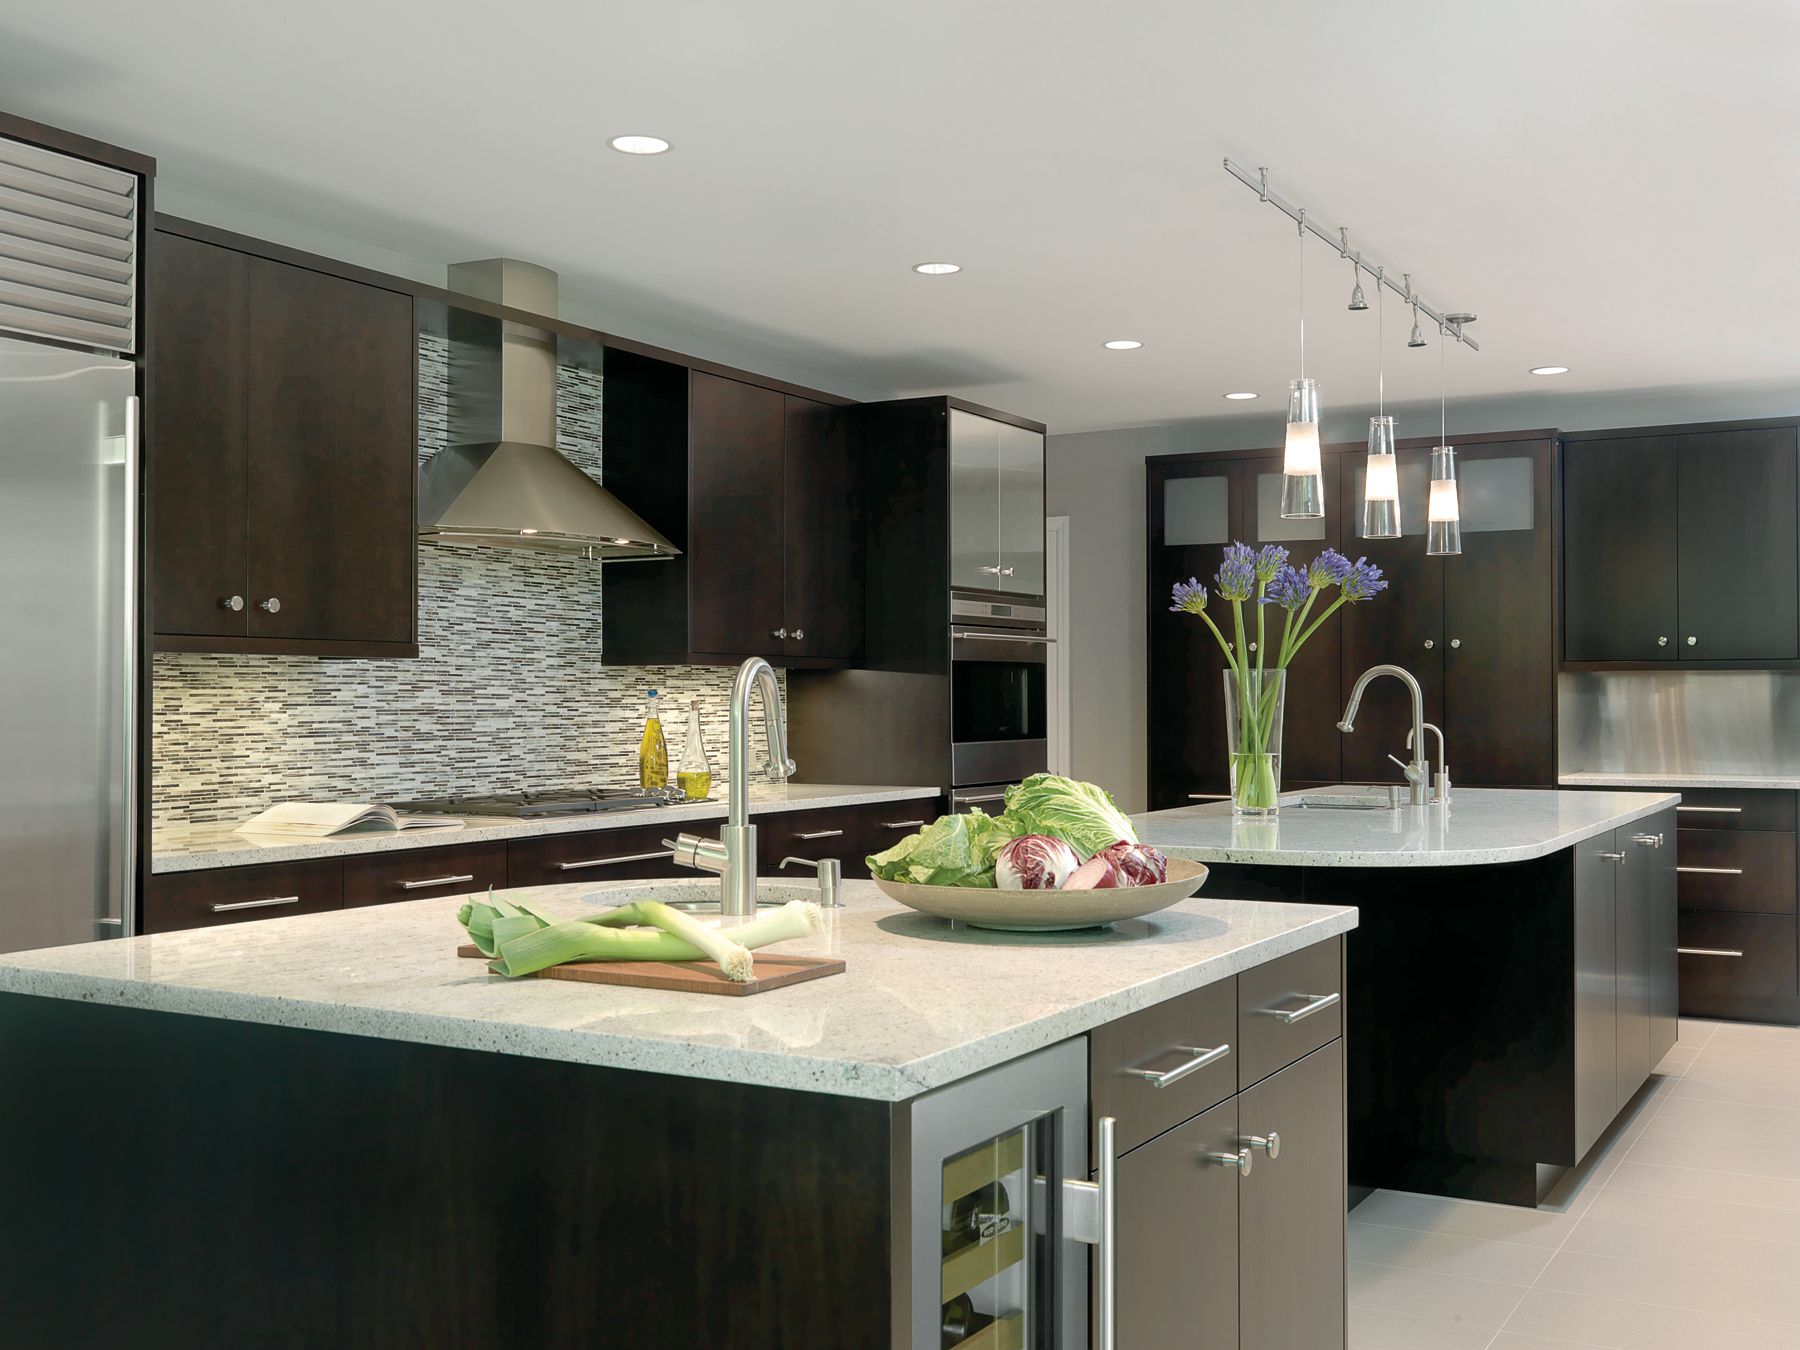 kitchens designs lolpix us award winning kitchen layouts winner less than 250 square